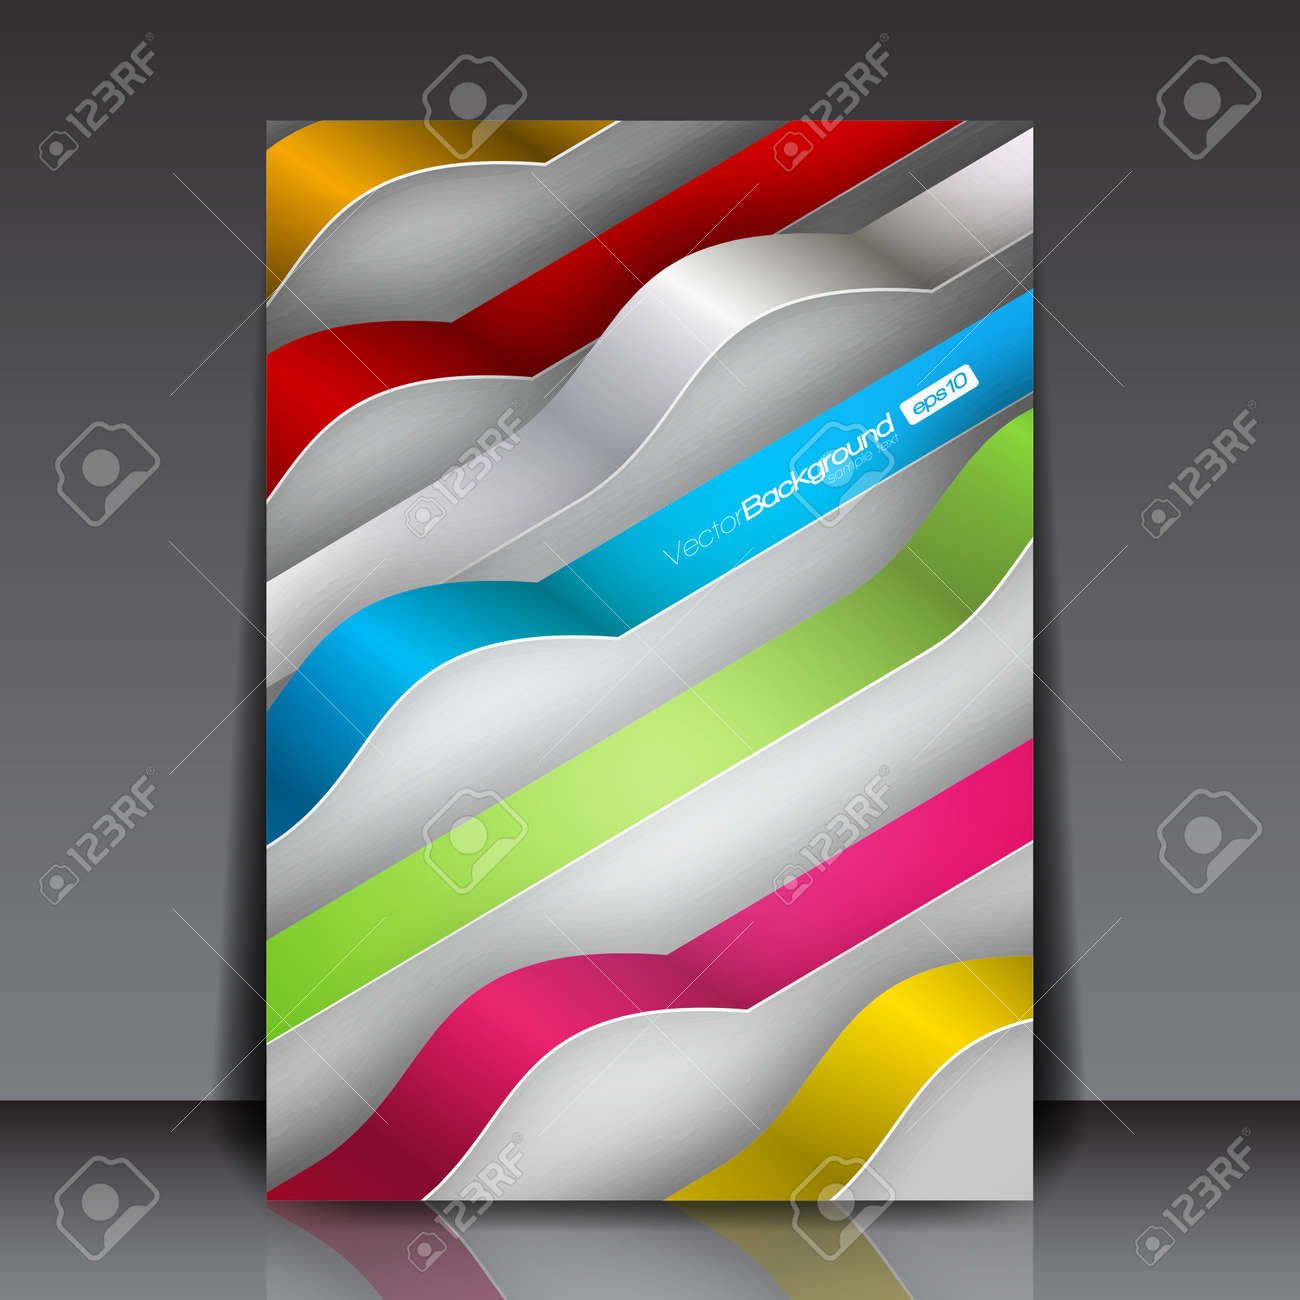 colorful d lines business flyer template royalty cliparts colorful 3d lines business flyer template stock vector 15775737